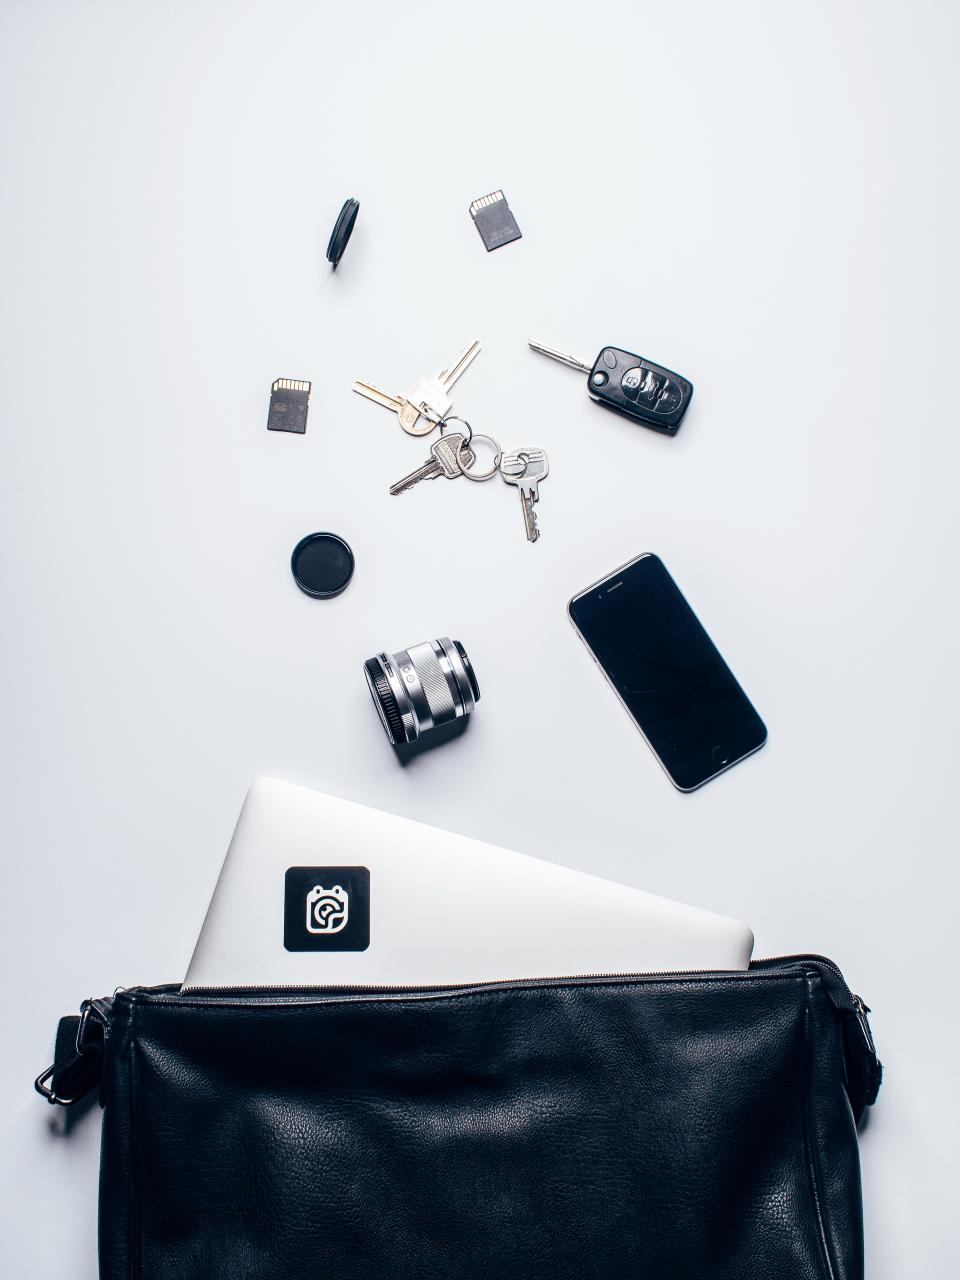 leather bag laptop computer technology iphone mobile lens keys sd card objects white